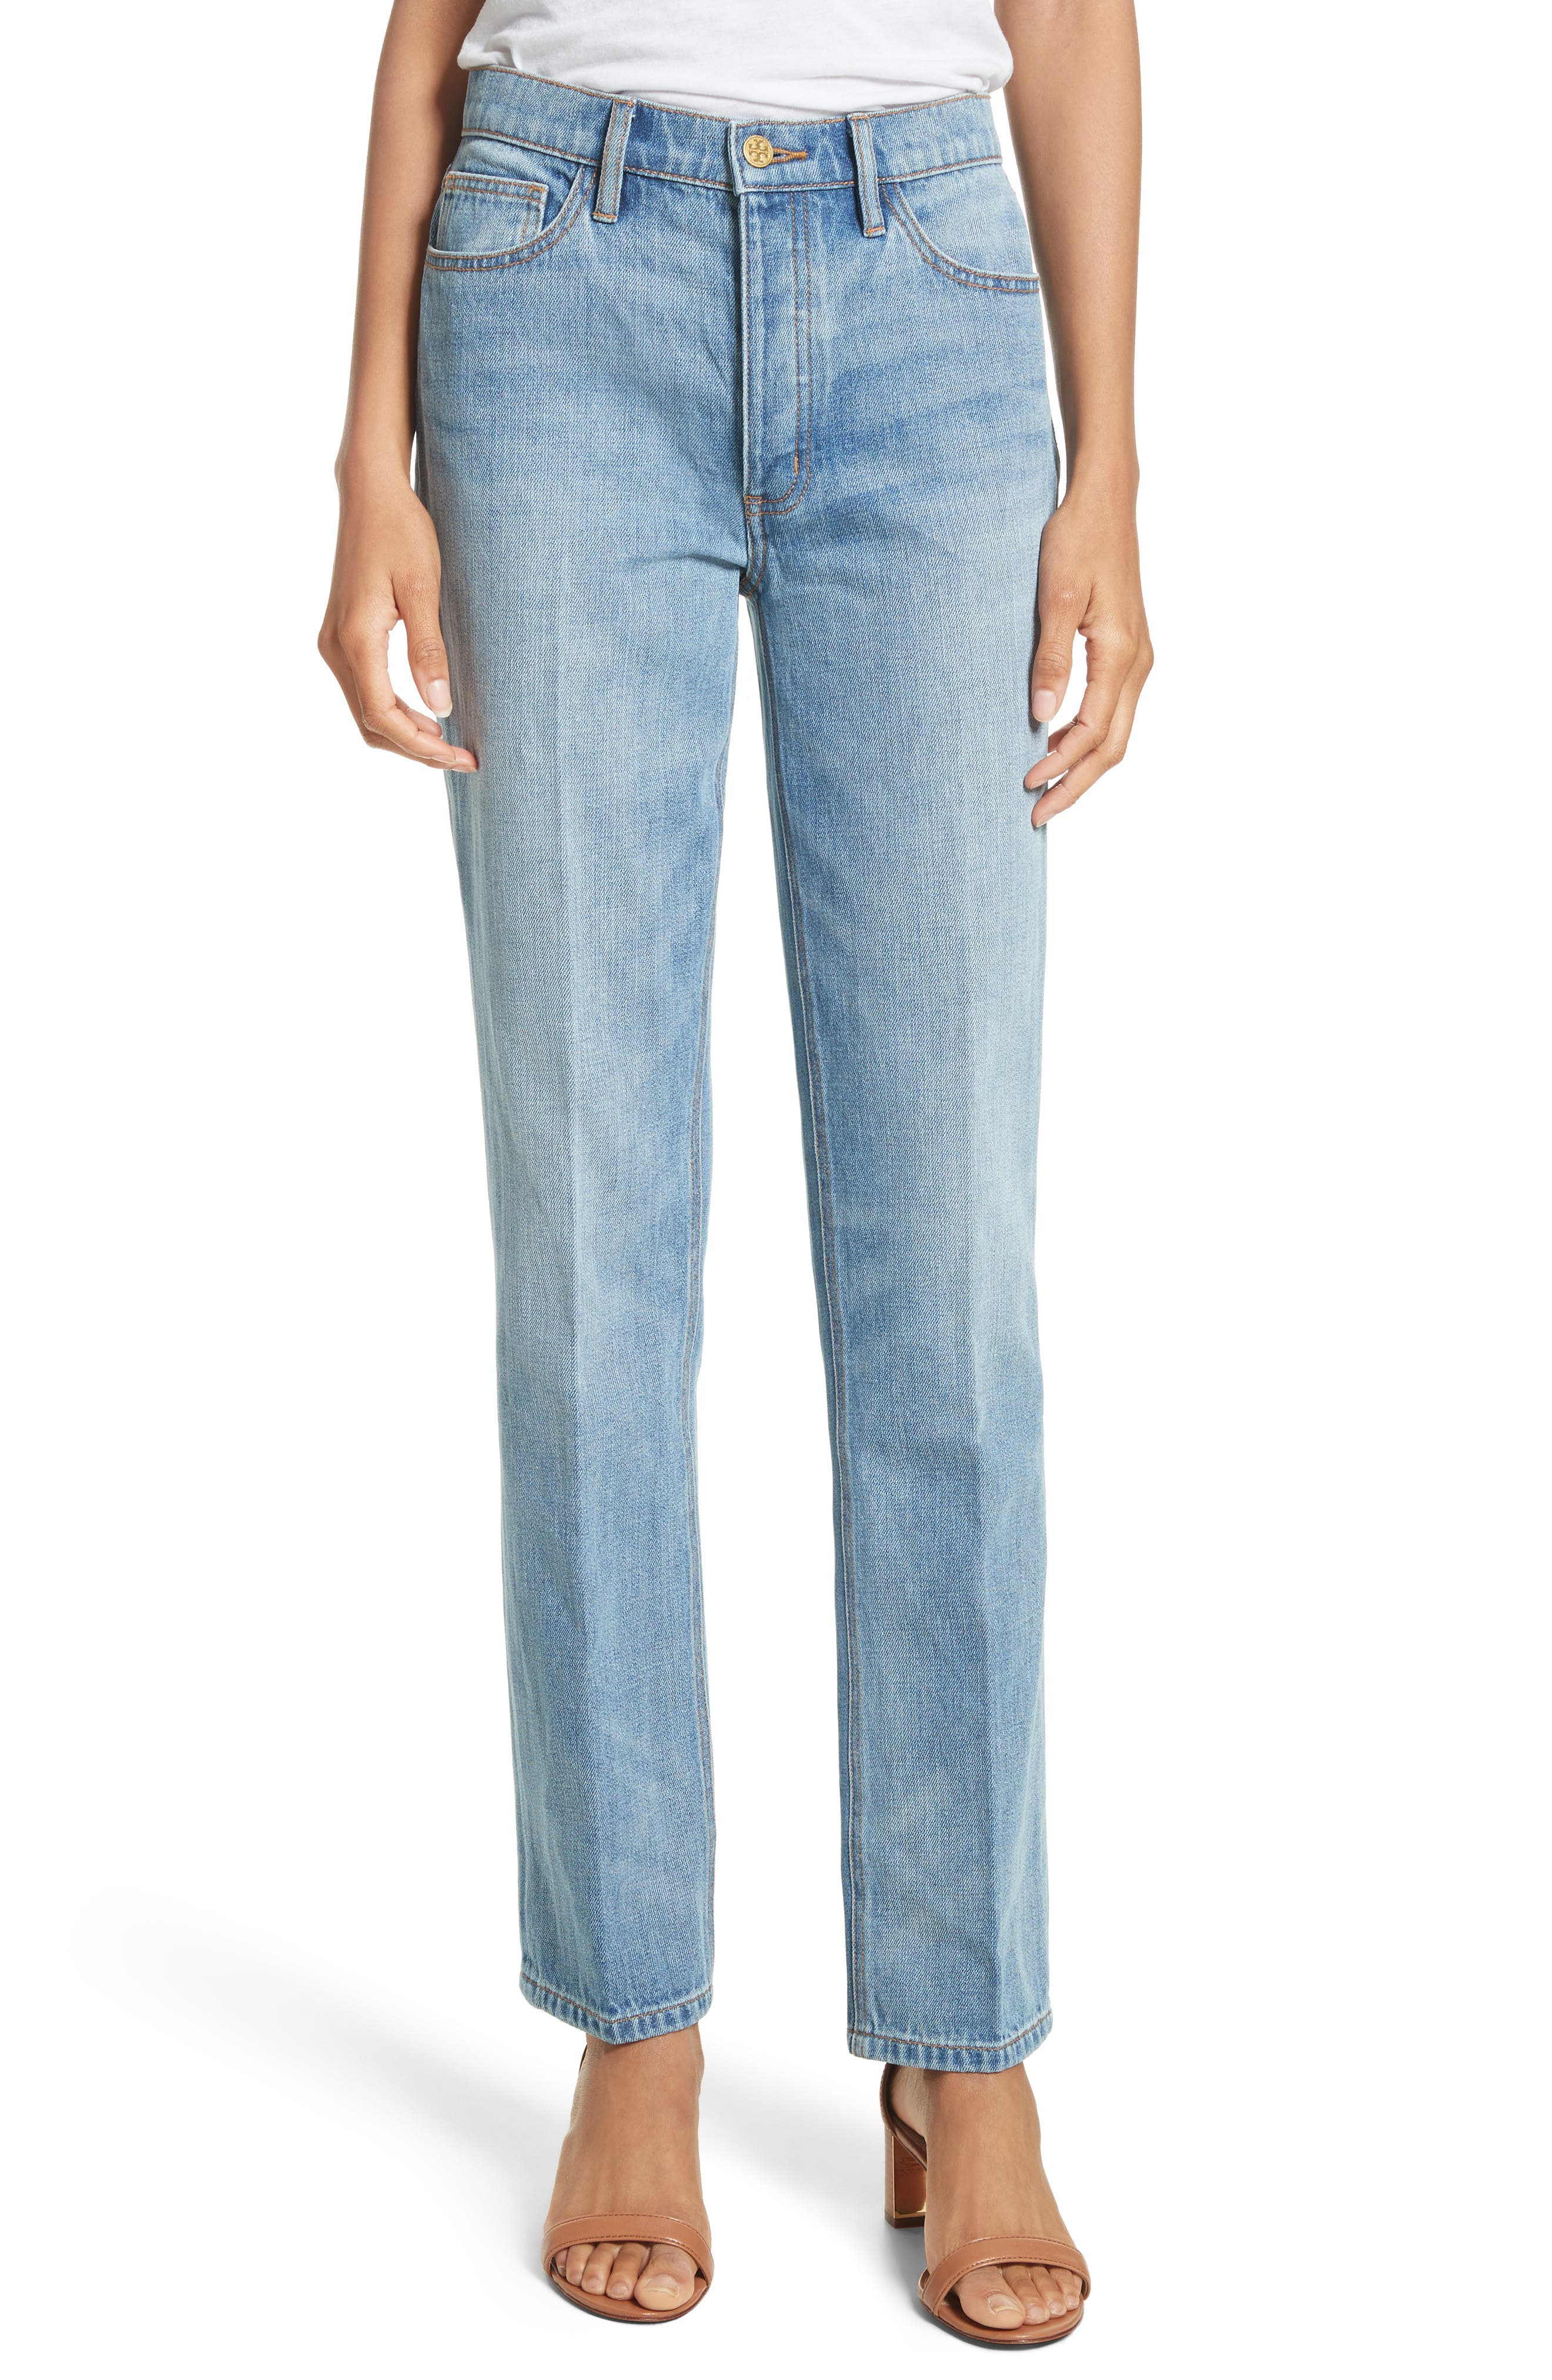 Alternate Image 1 Selected - Tory Burch Betsy Straight Leg Jeans (Dusk Blue)